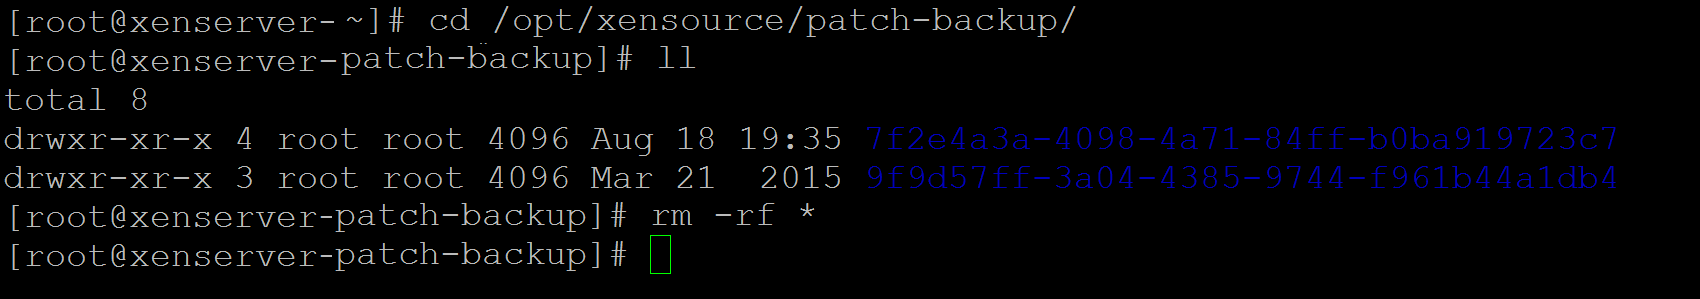 In the /opt/xensource/patch-backup directory, command rm -rf